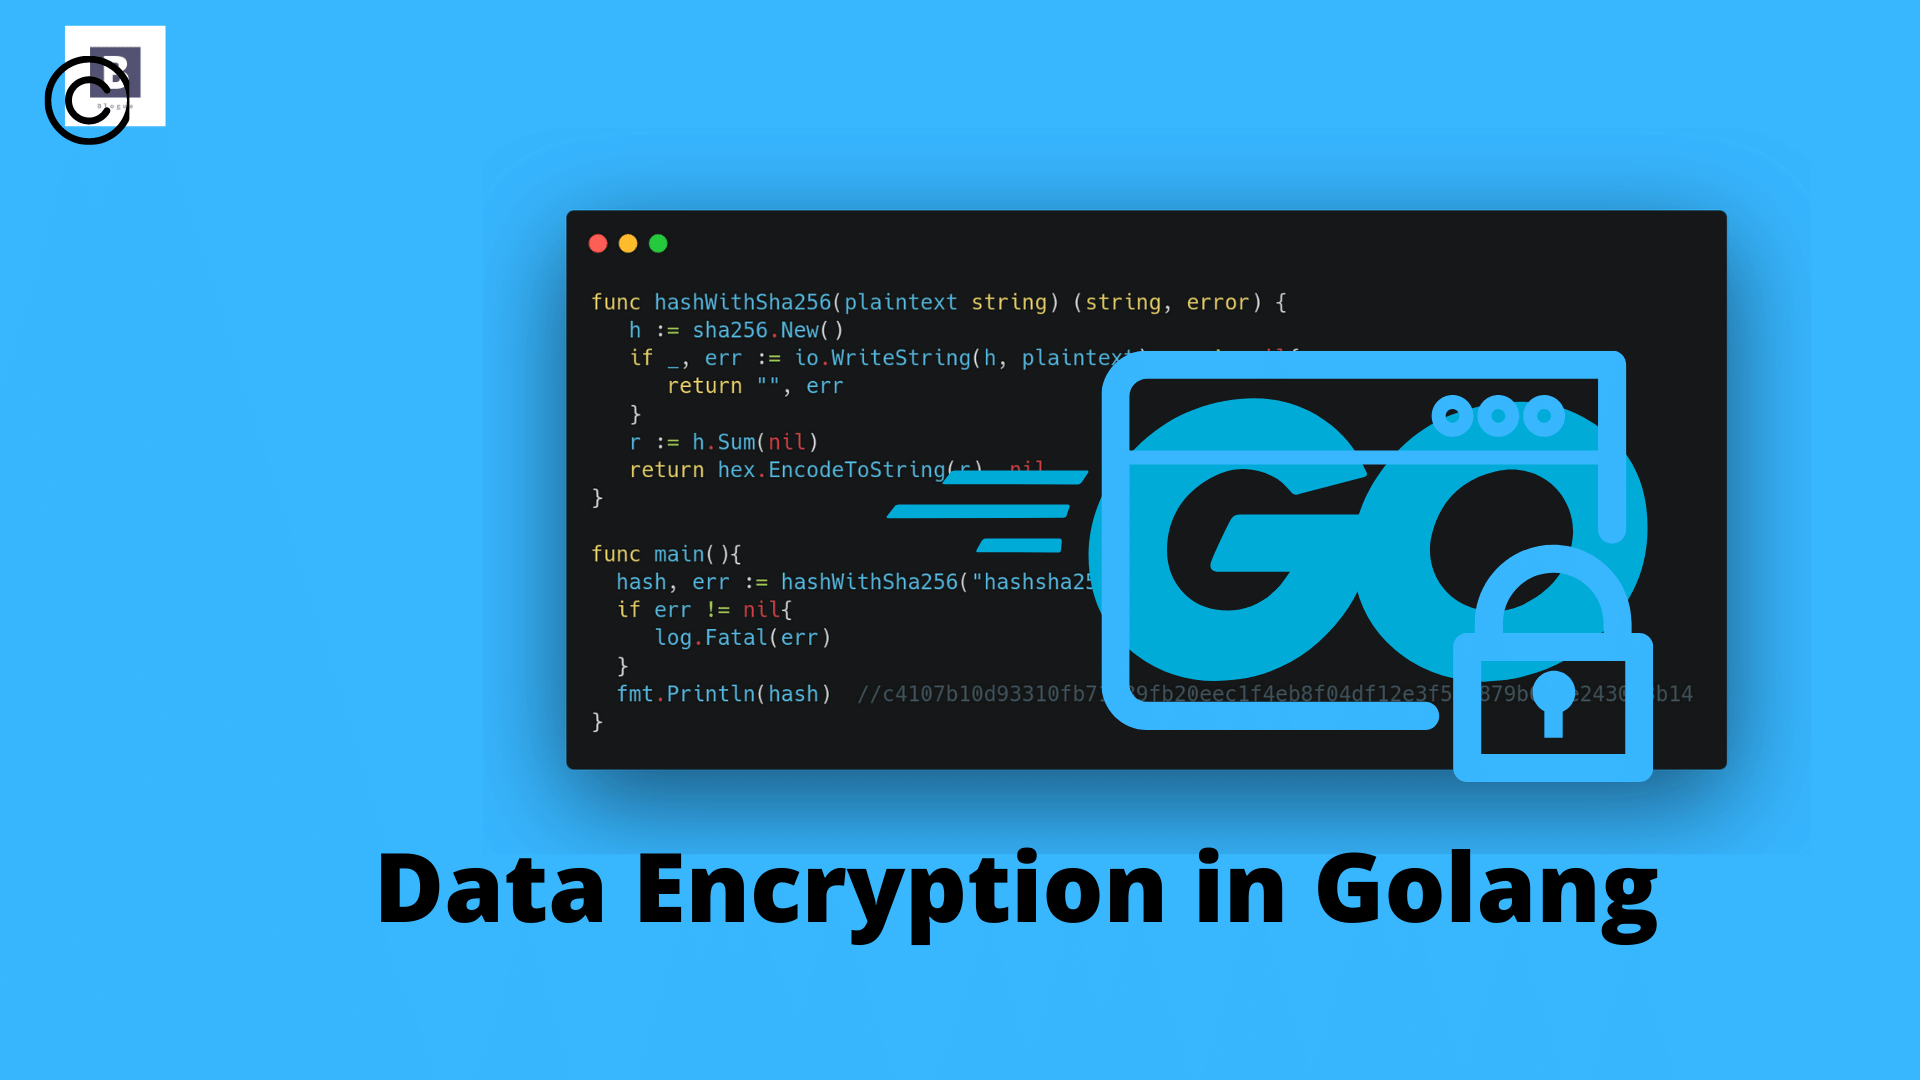 Data Encryption in Golang